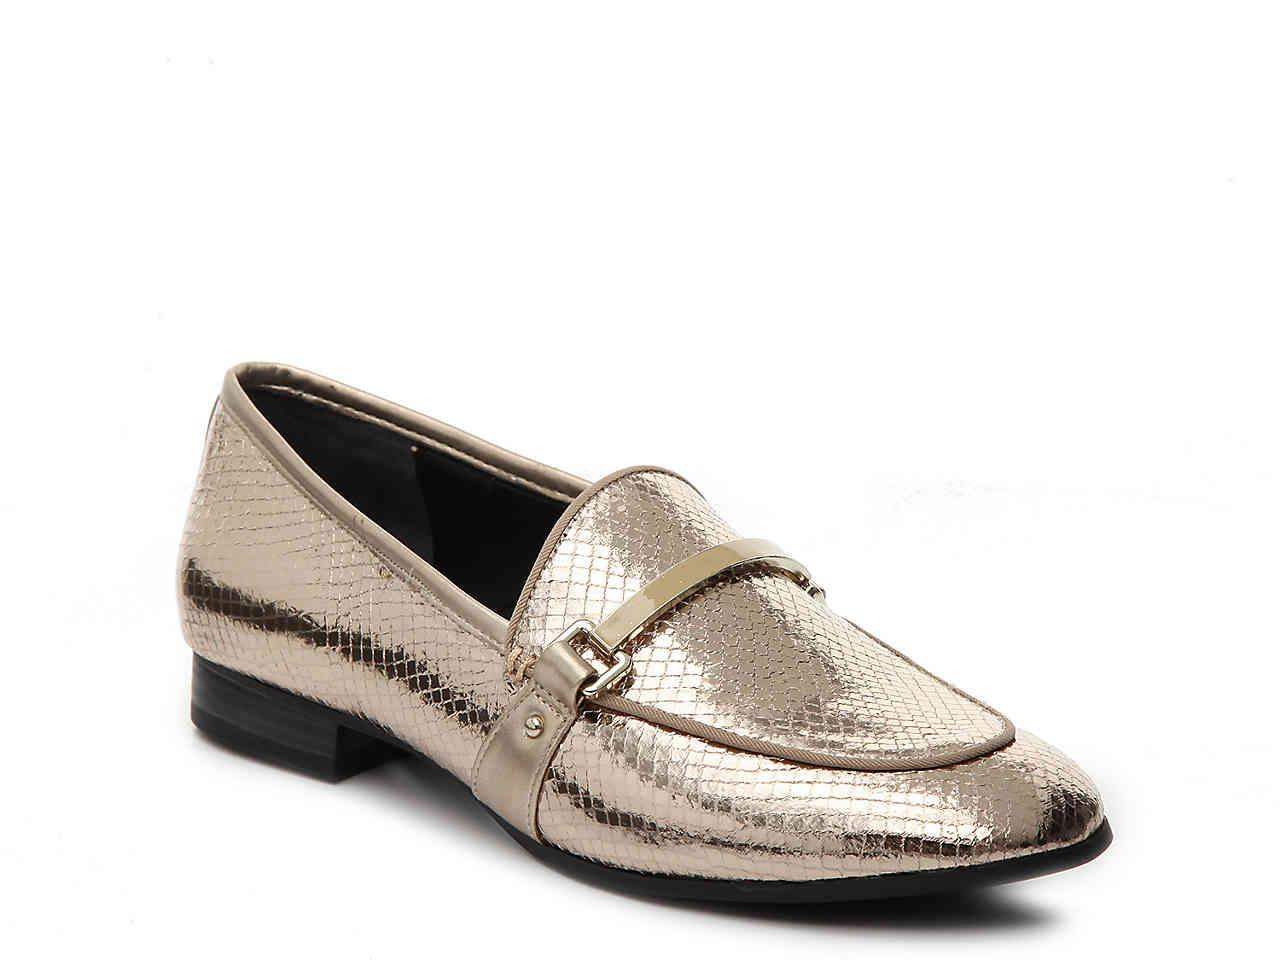 fdbc21d41 Lyst - Circus by Sam Edelman Hendricks Loafer in Metallic - Save 34%